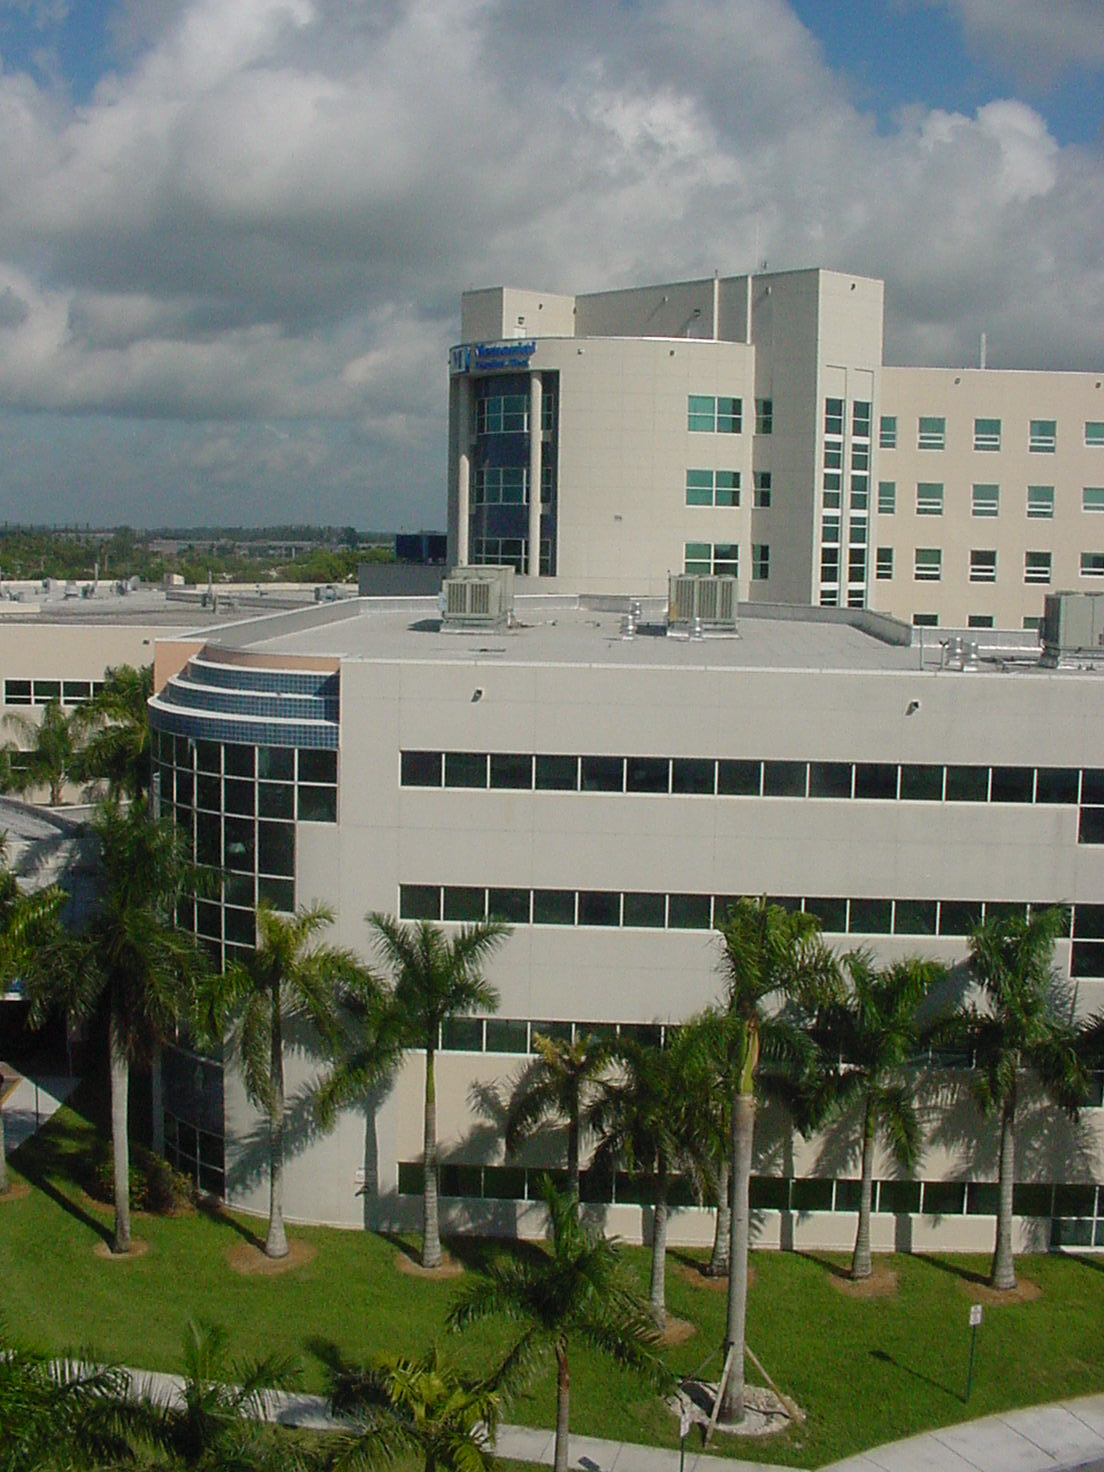 Memorial Hospital West: Hurricane Upgrade Project